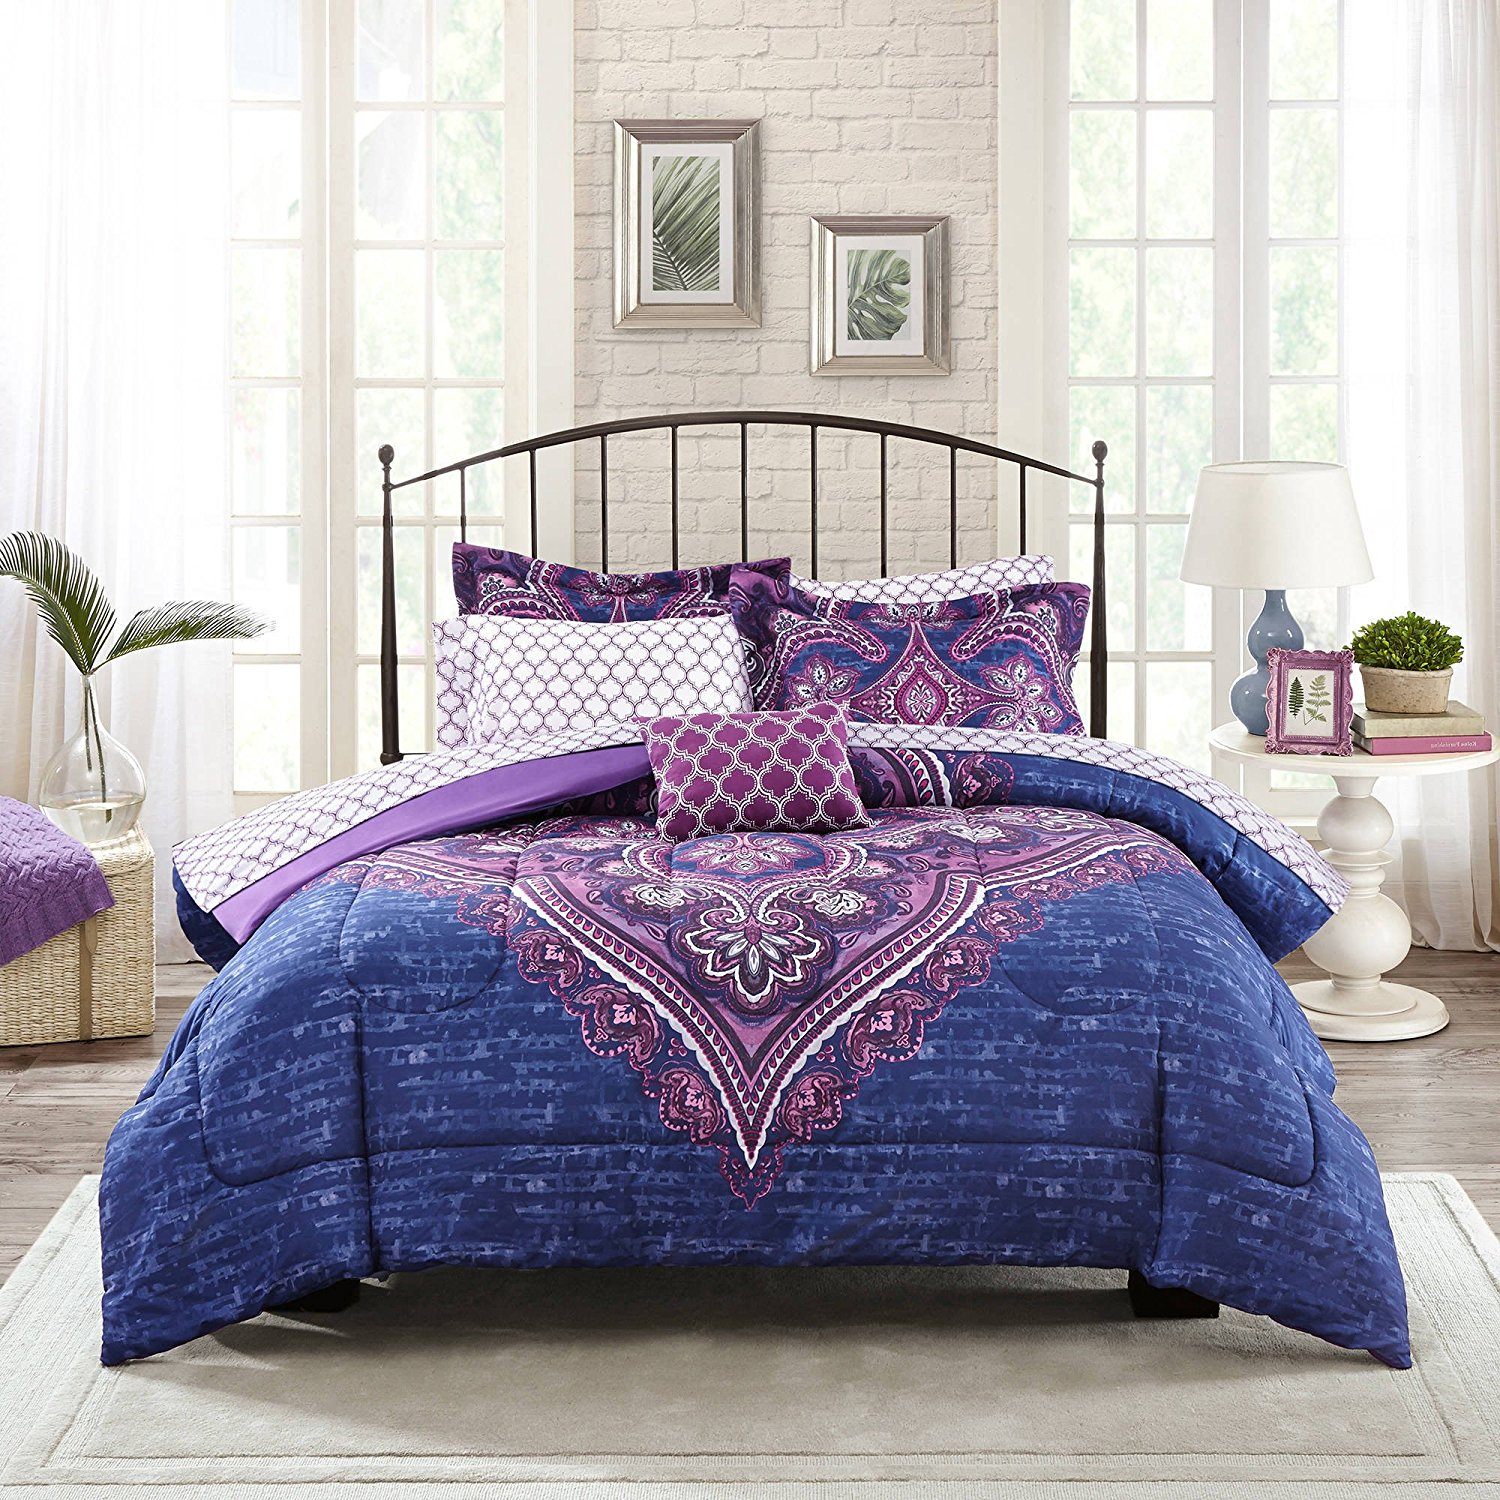 8 Piece Girls Purple Color Medallion Comforter Set With Sheets Full, Navy Floral Themed Motif Chic Boho Textured, Reversible Purple White Lattice Pattern Kids Bedding, Microfiber Polyester